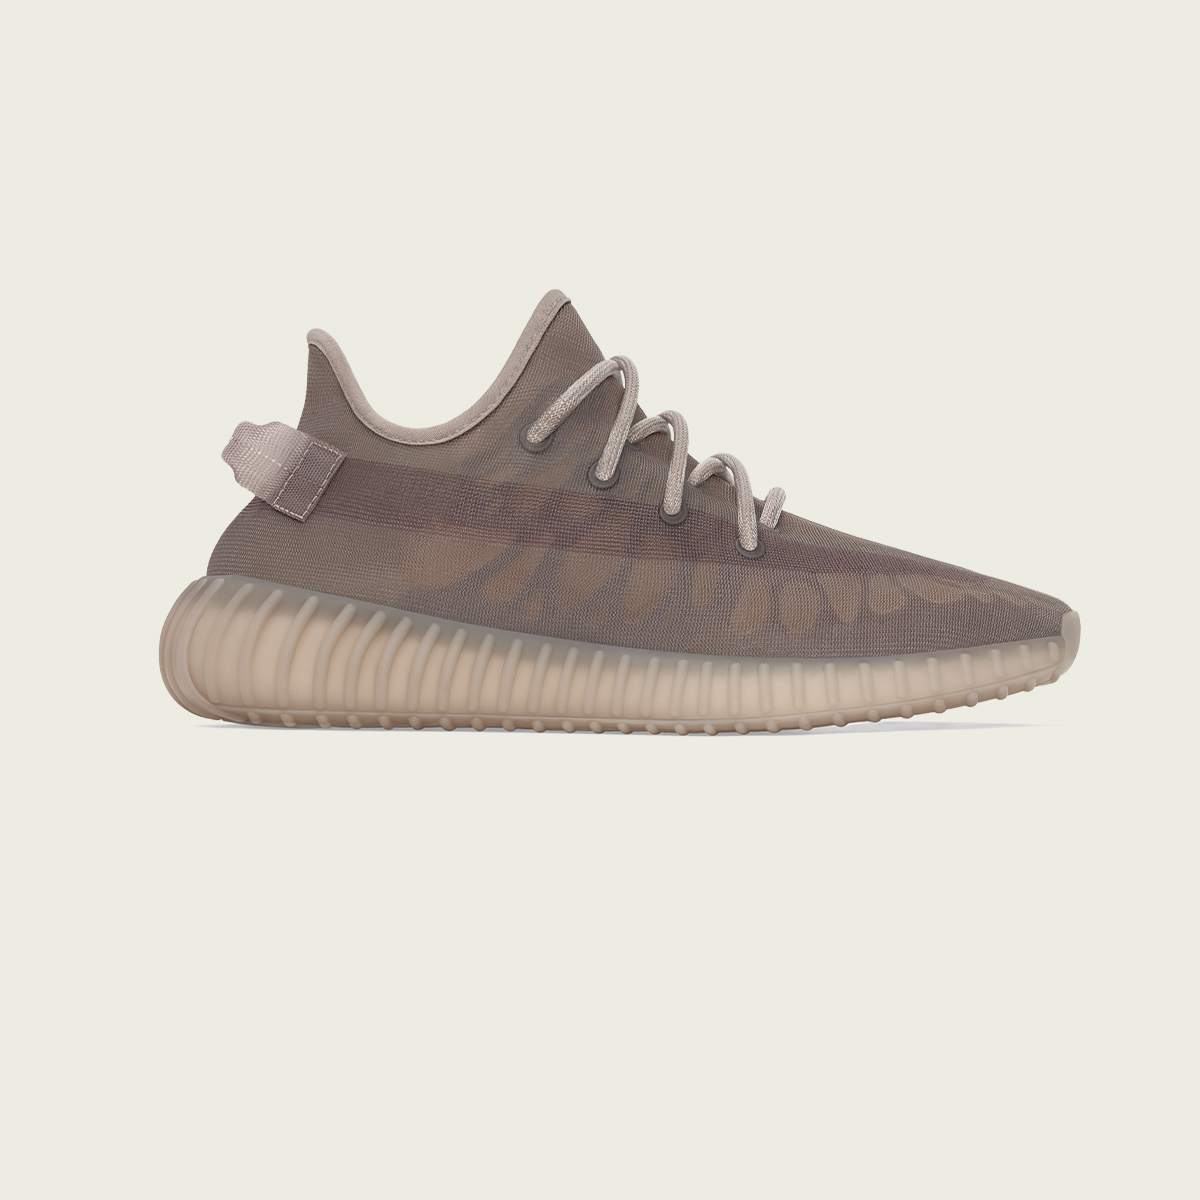 We look at the adidas YEEZY Boost 350 V2 'Mono Mist'